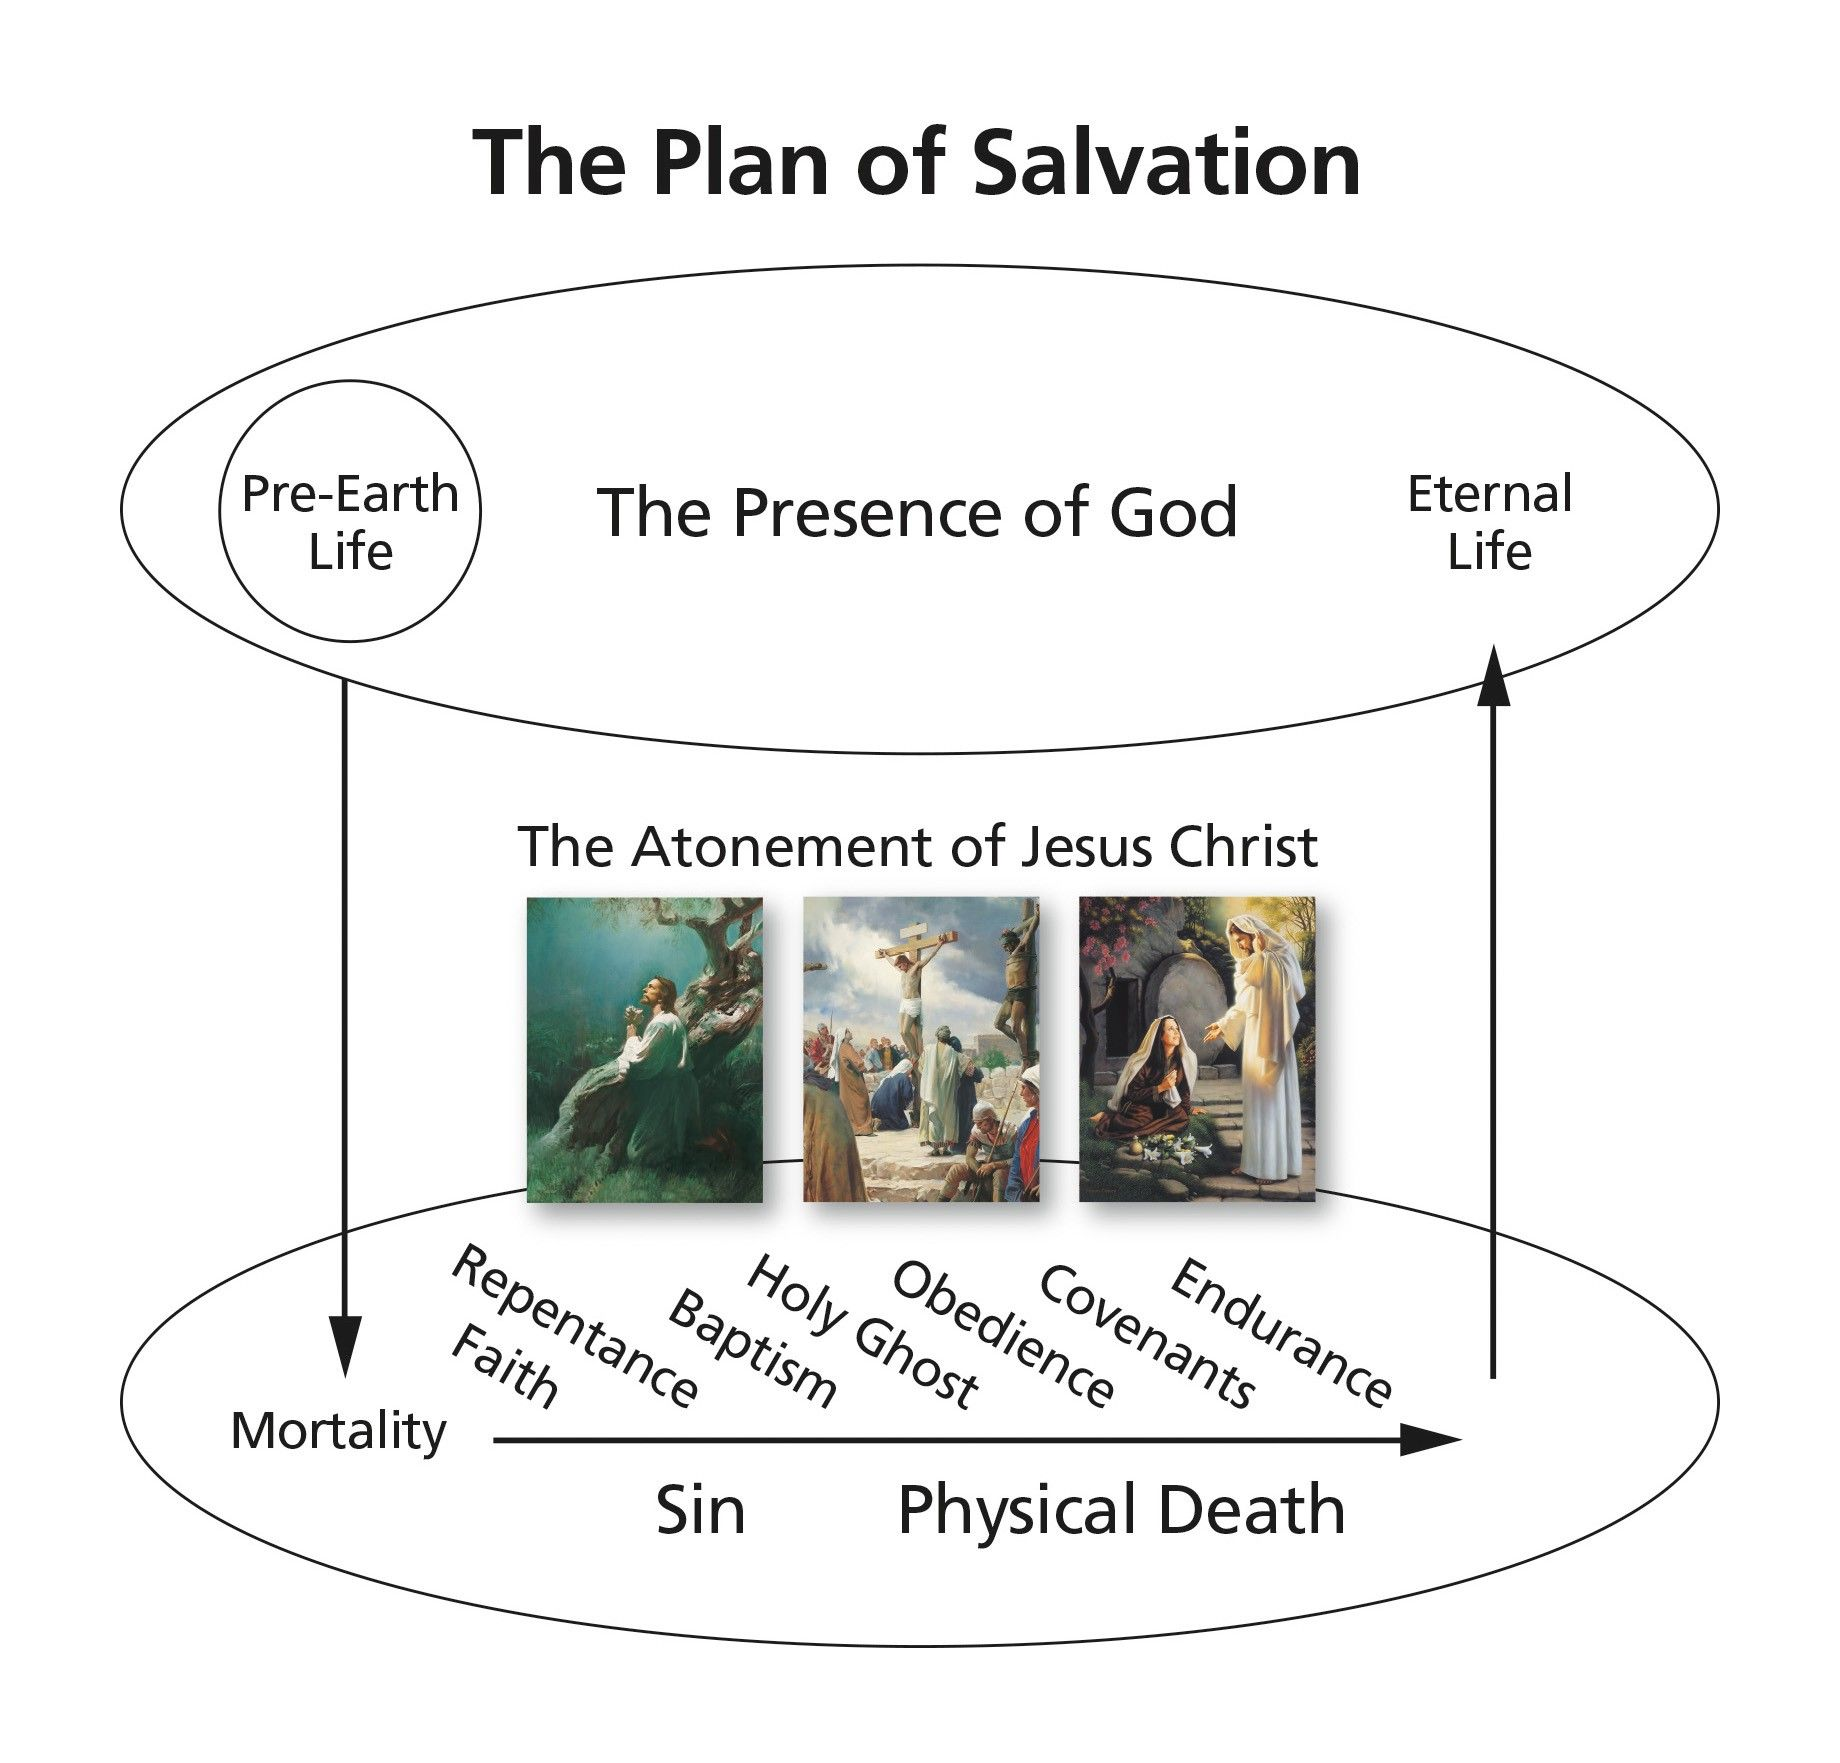 A diagram depicting the plan of salvation.